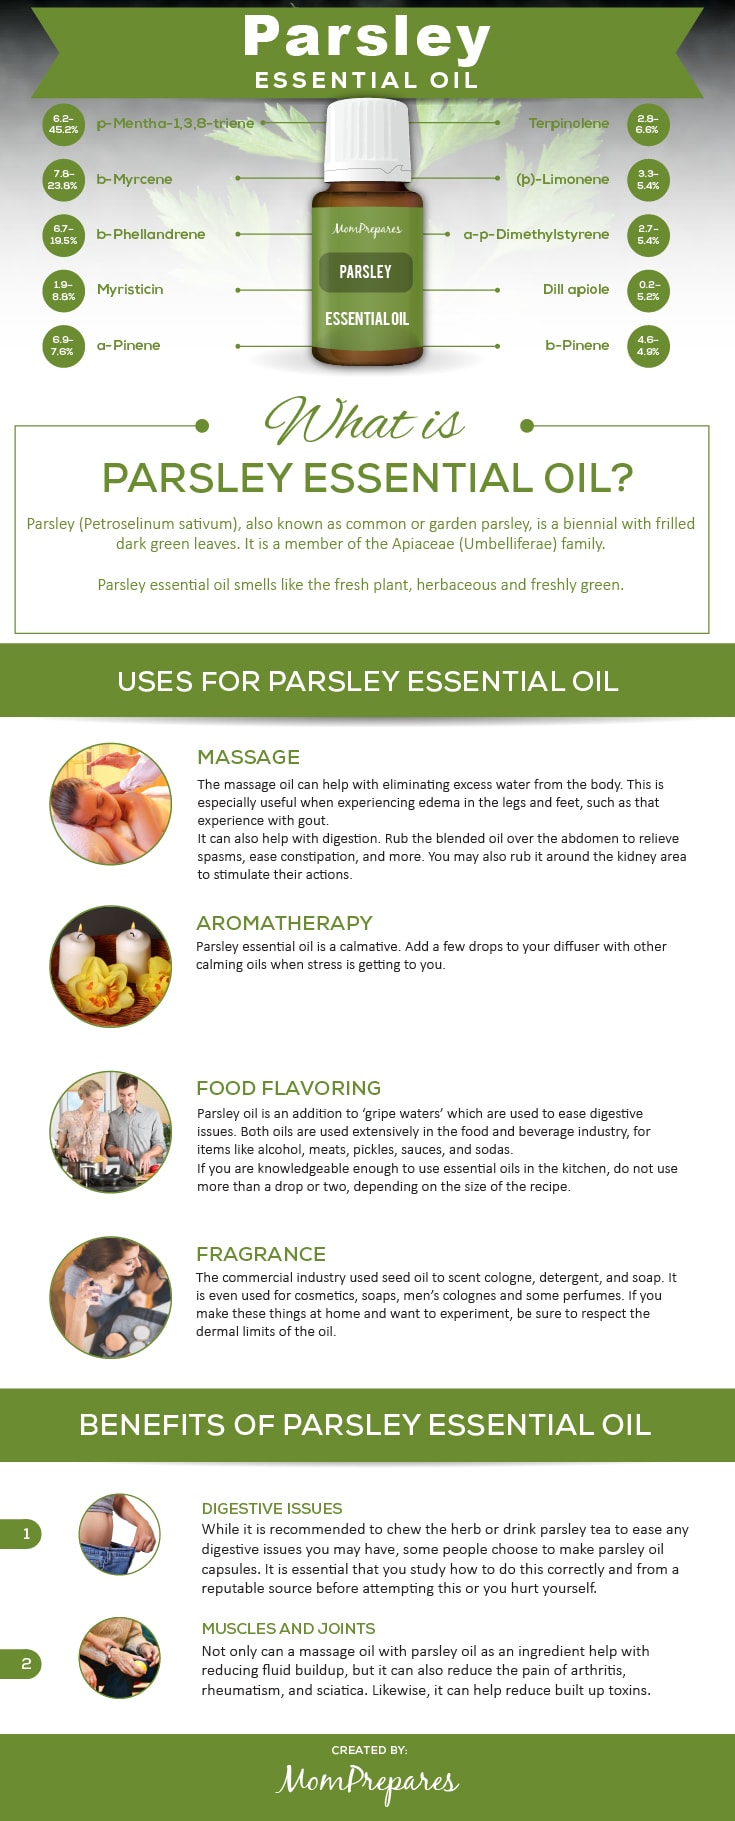 Parsley infographic